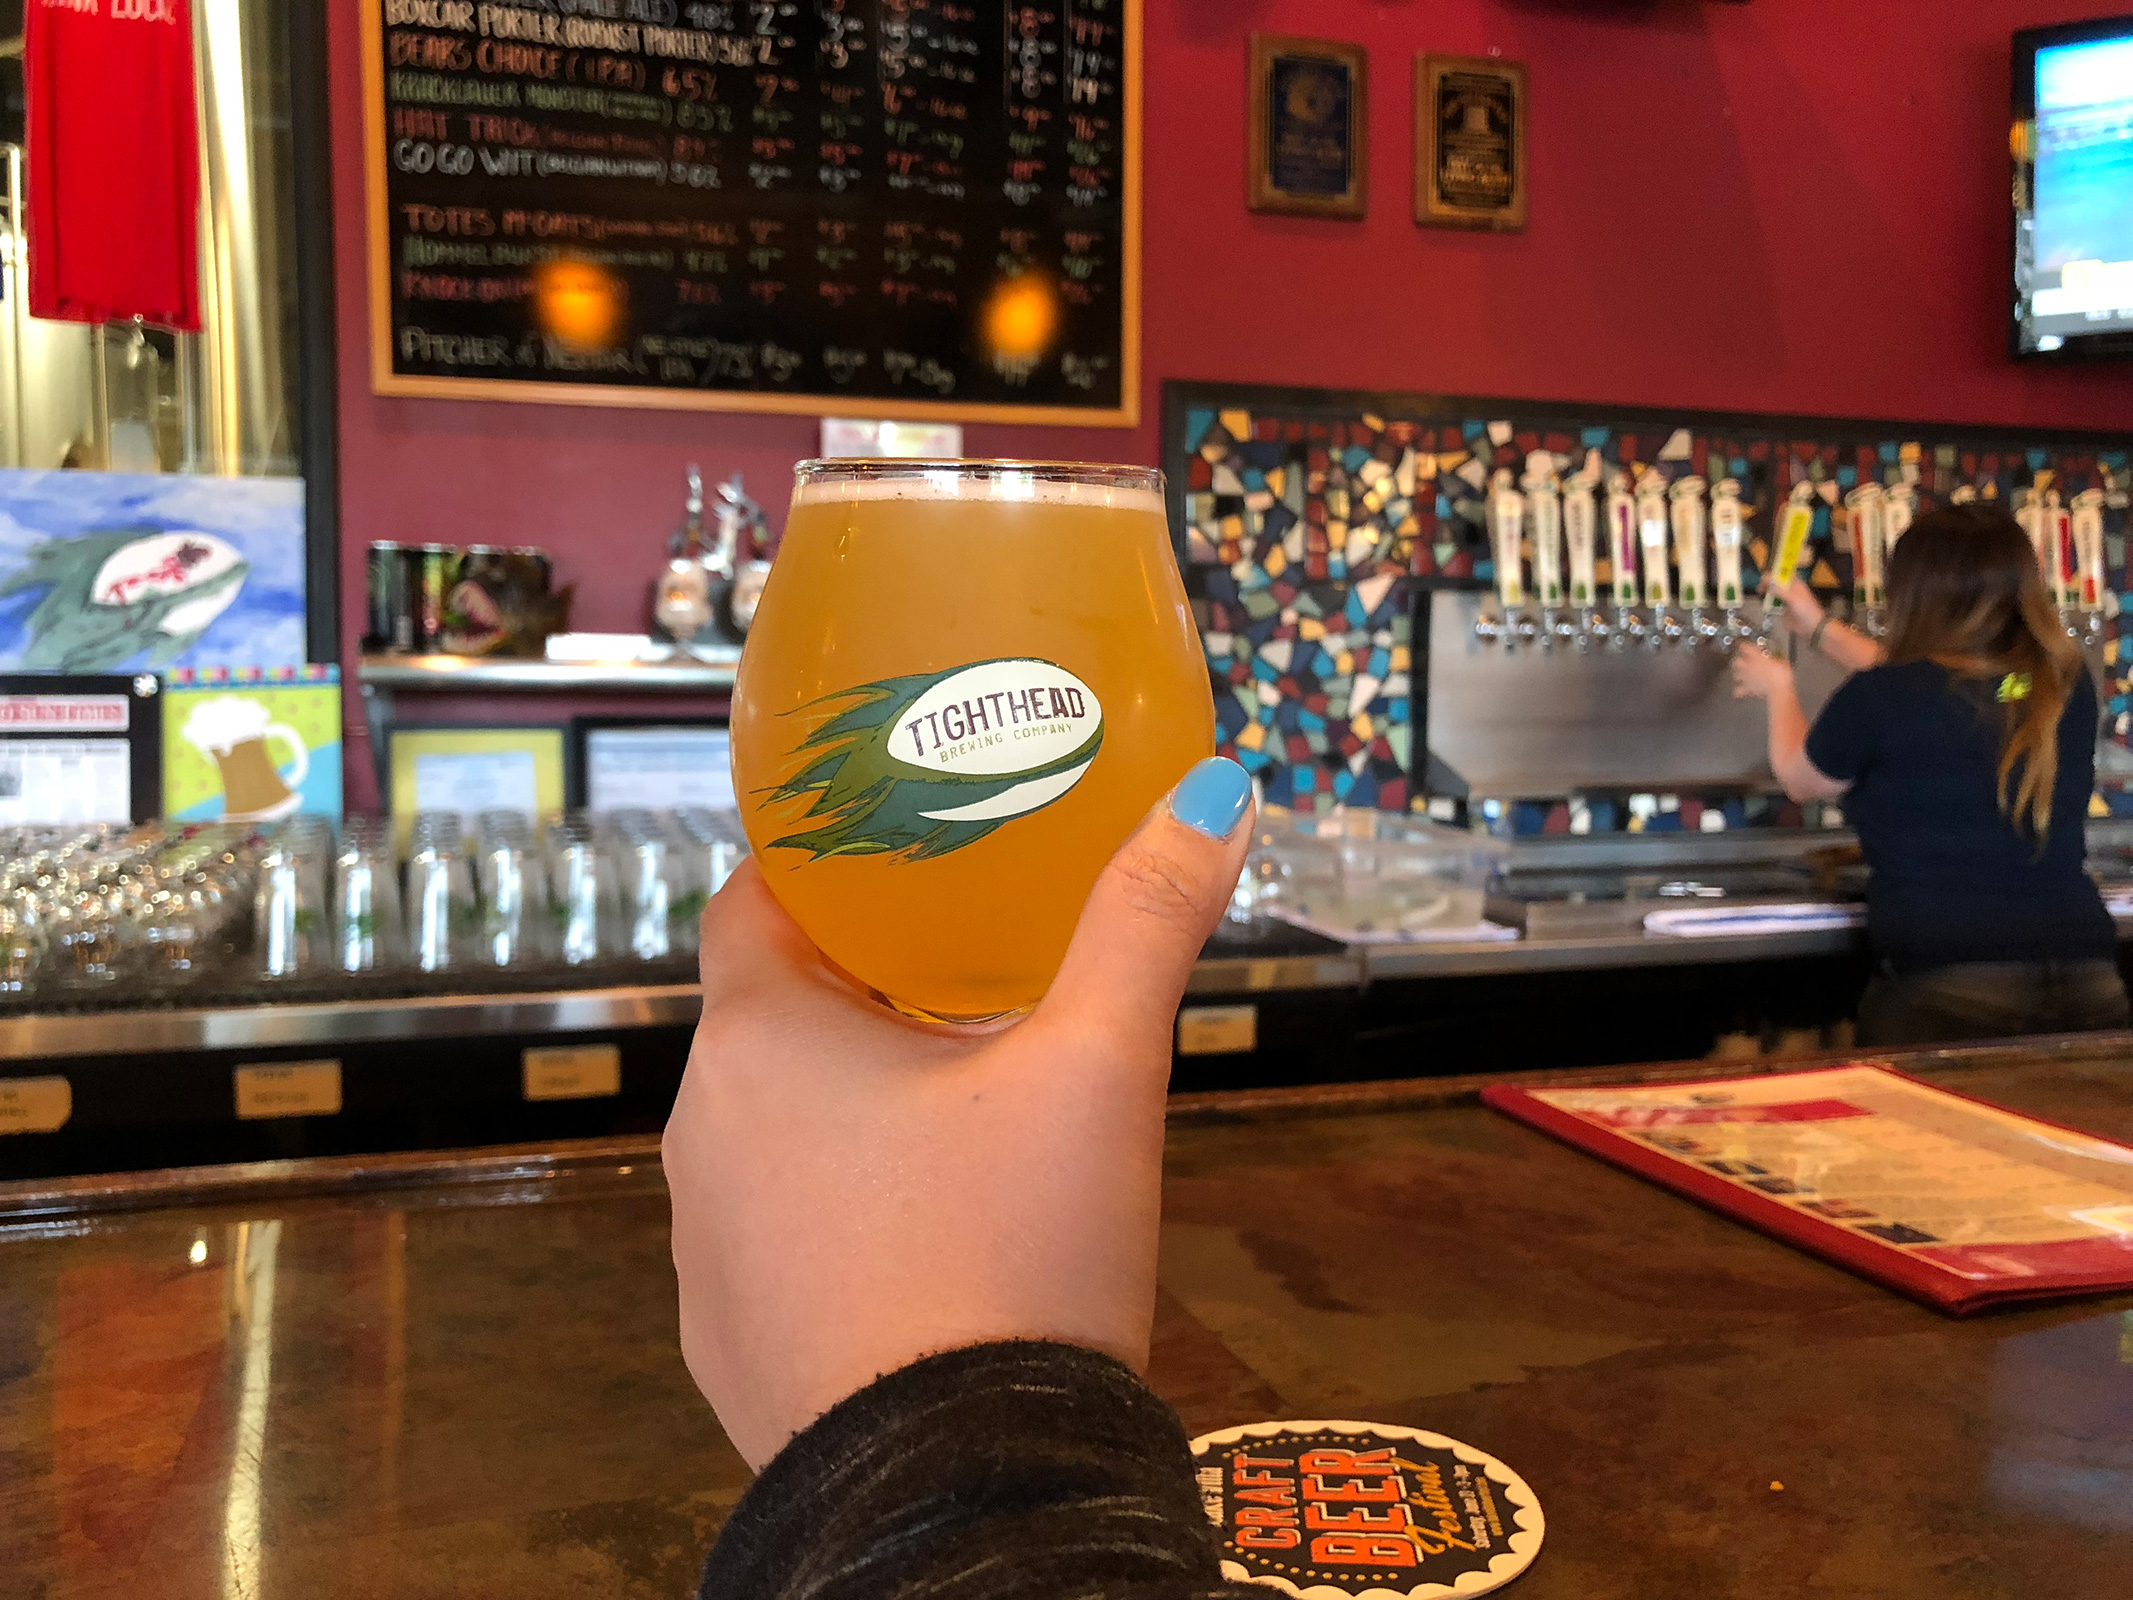 Tighthead Brewing Co. in Mundelein, IL by Jets Like Taxis / Hopsmash